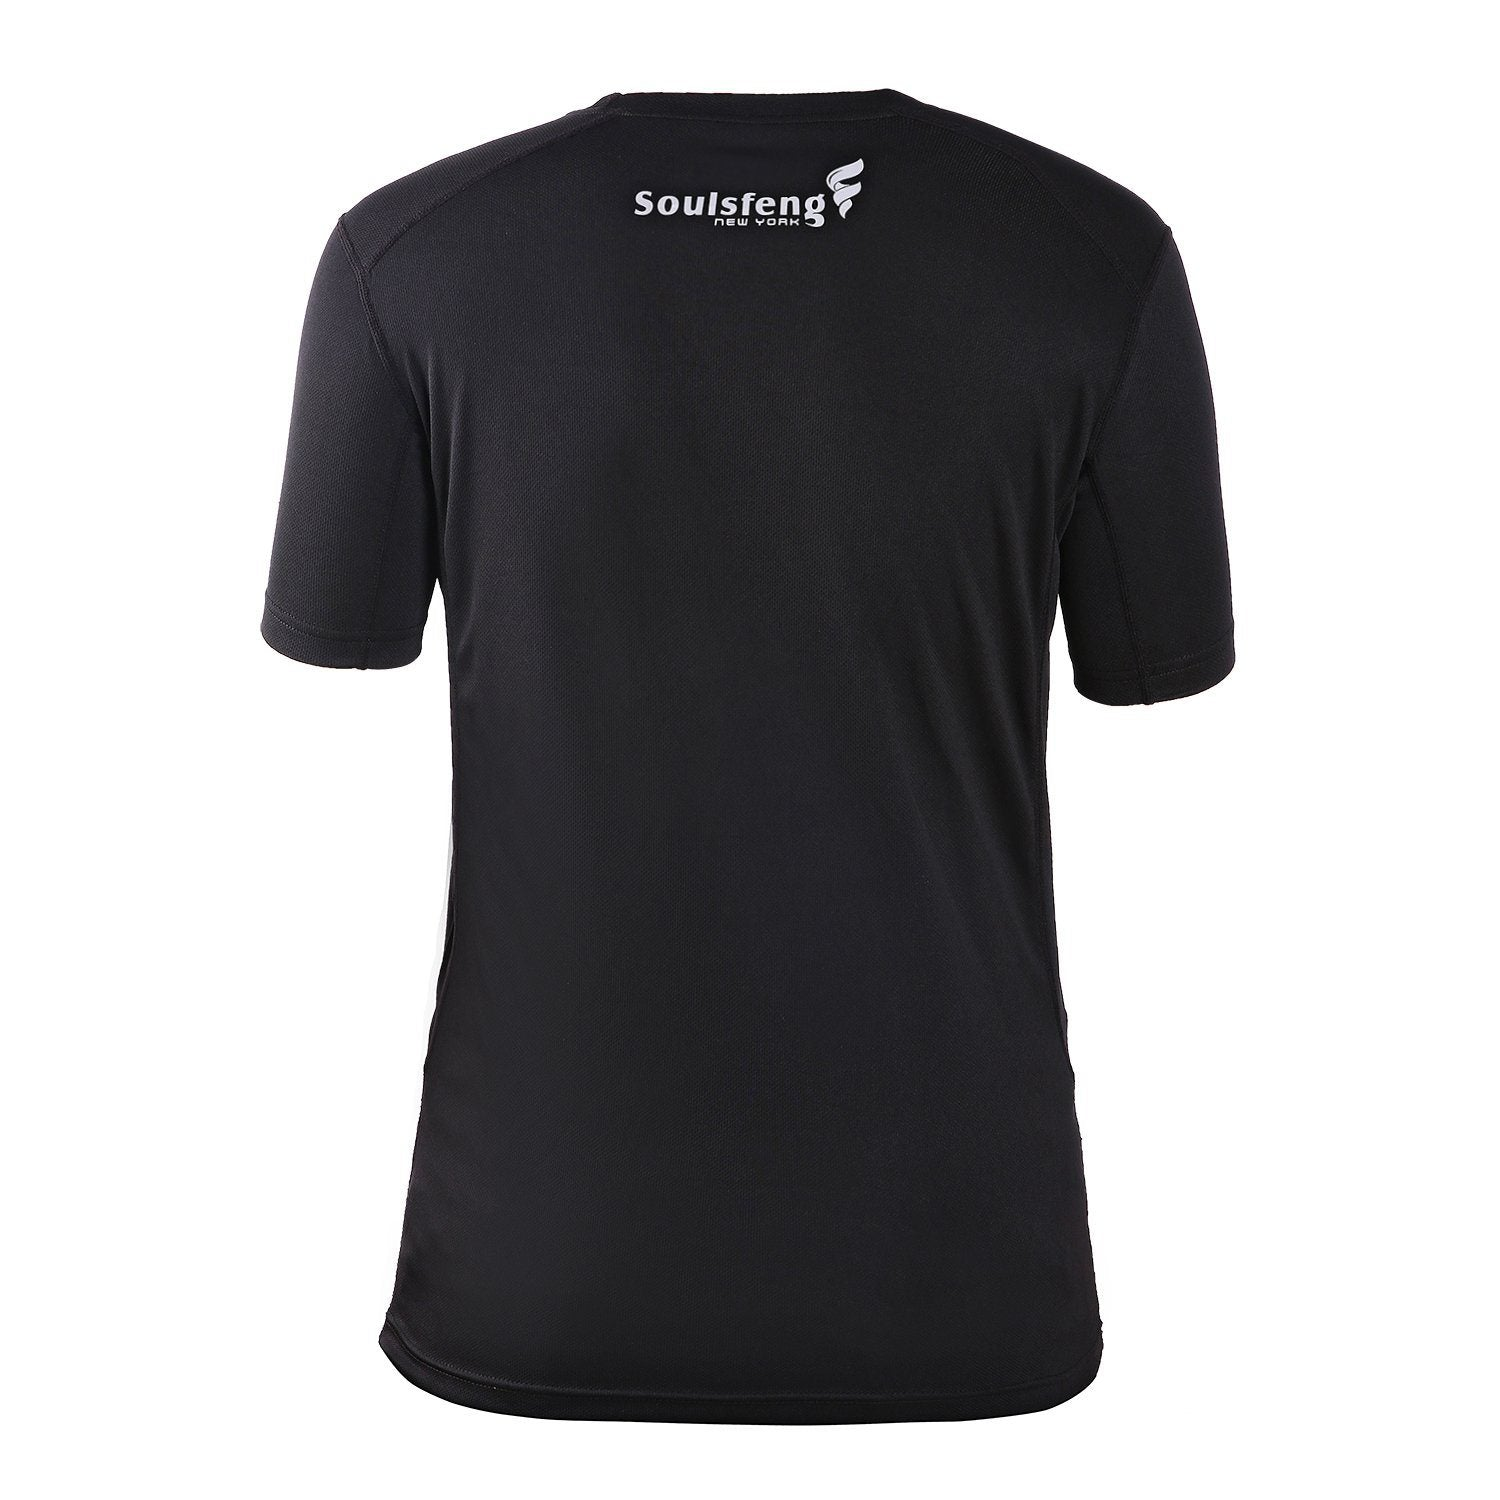 OG Black Quick Dry Shirt Men - Soulsfeng